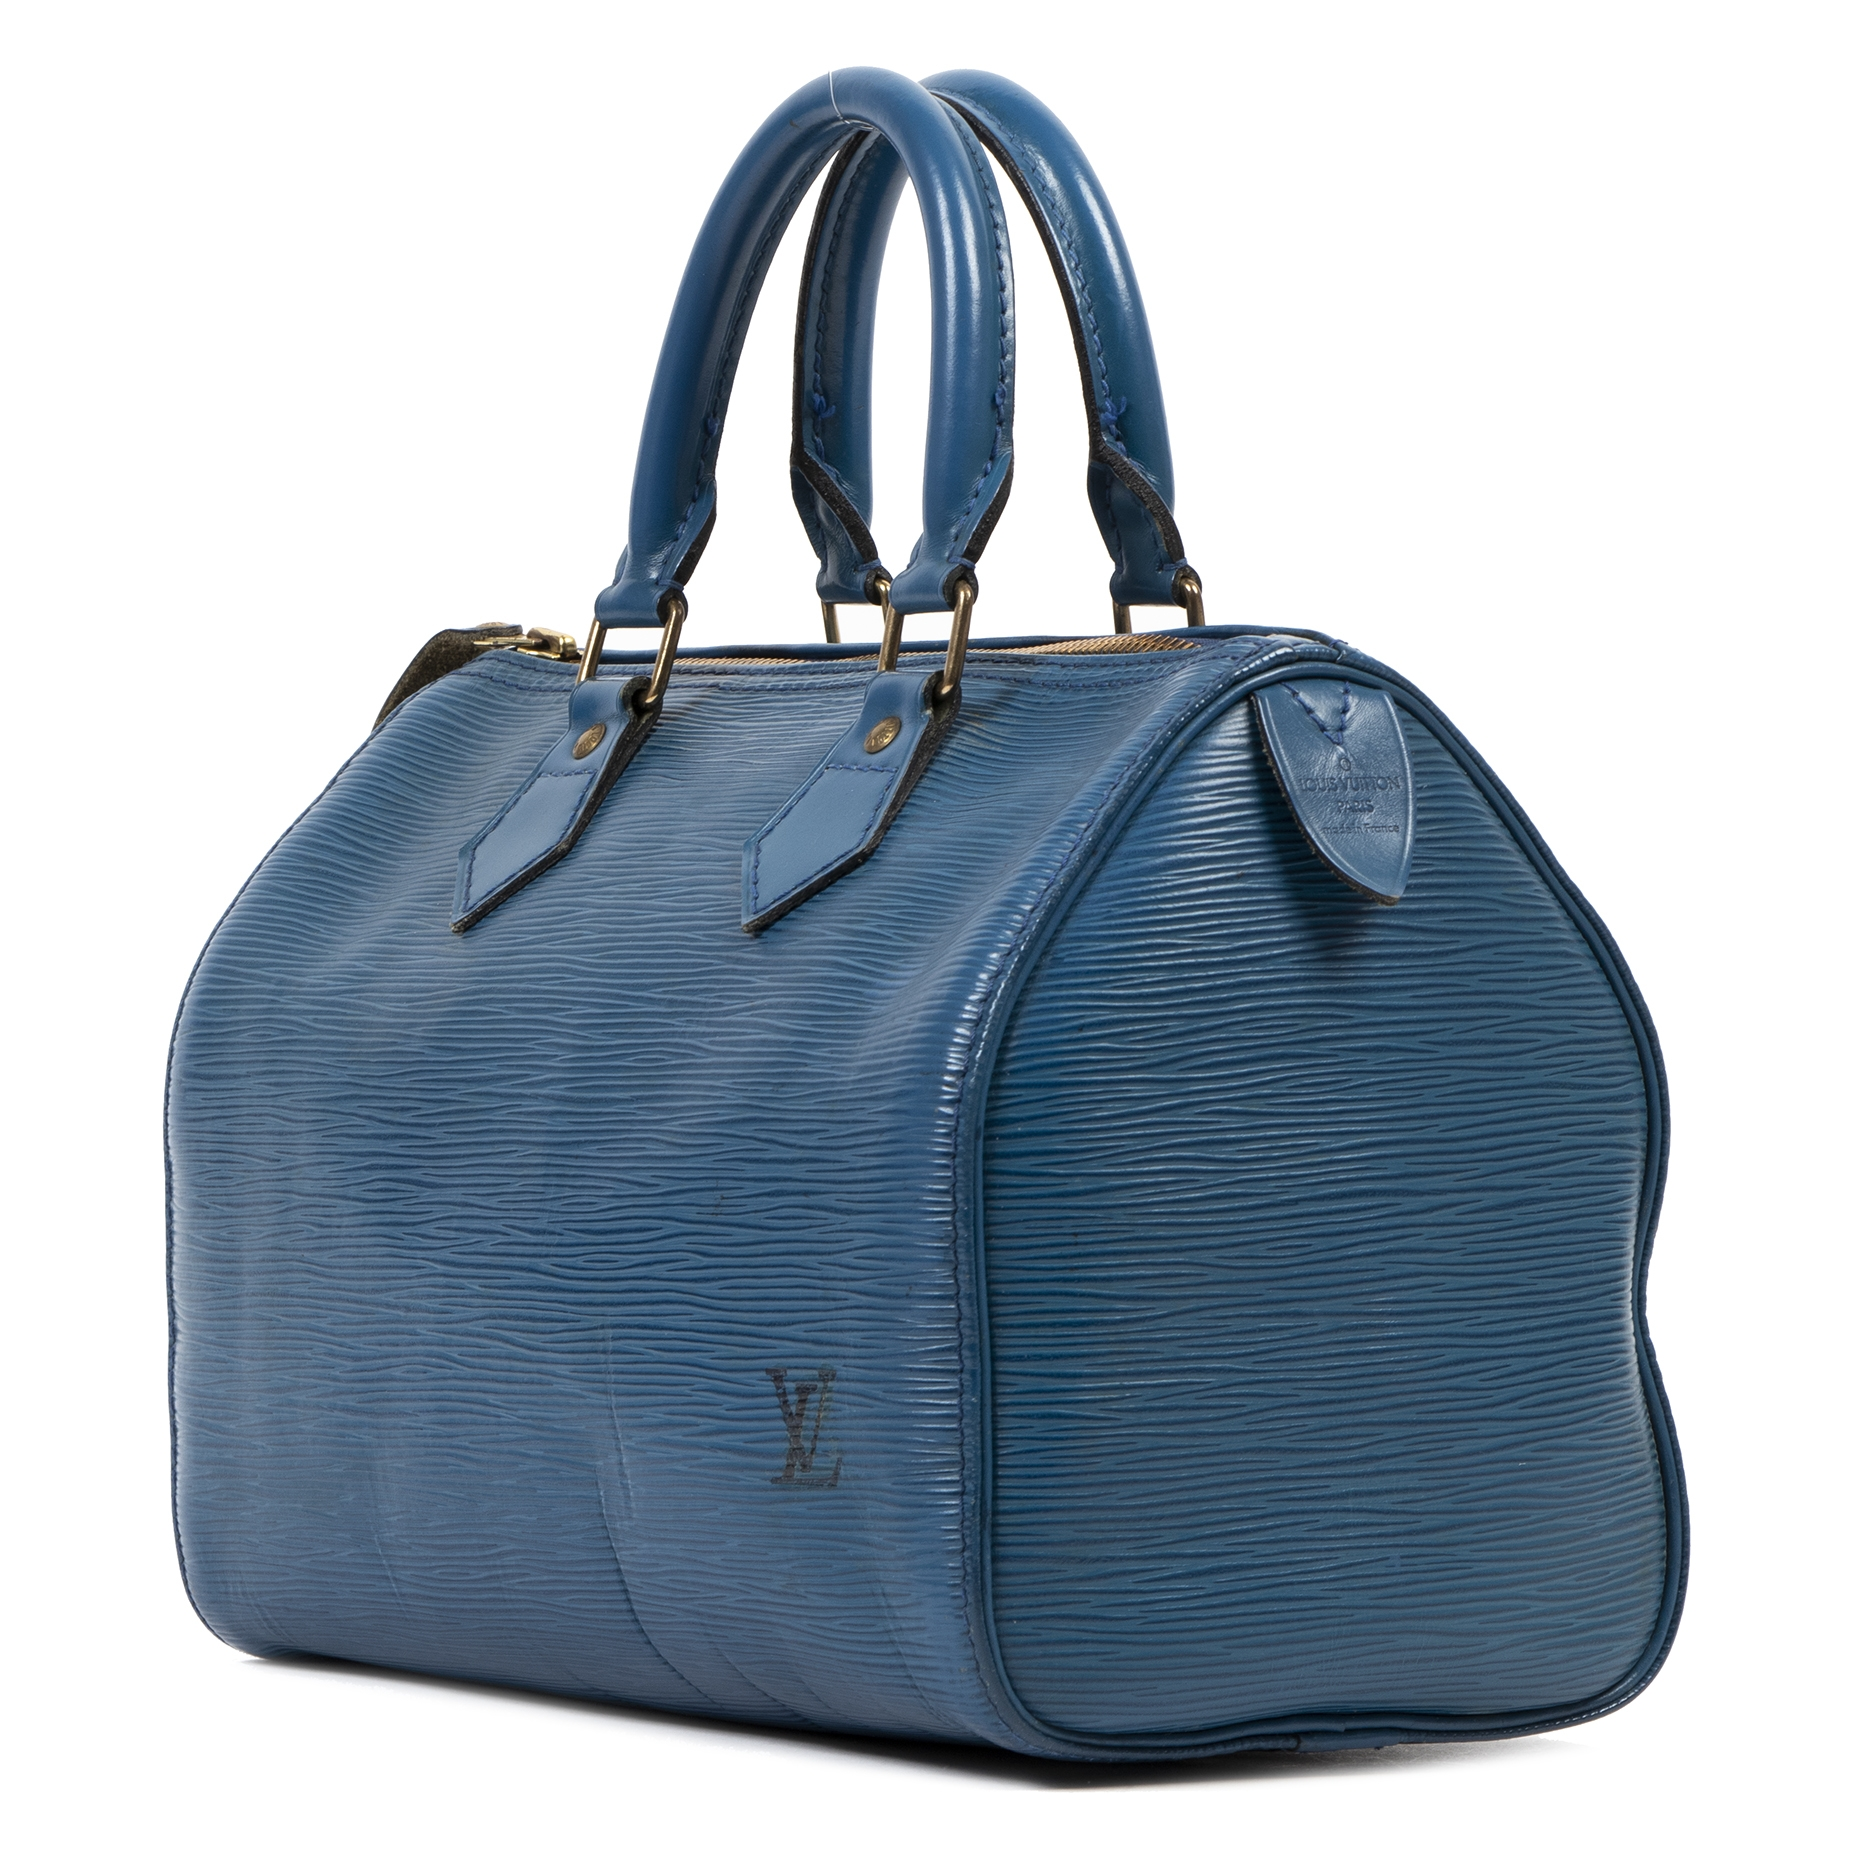 Authentic secondhand Louis Vuitton Blue Epi Speedy 25 Bag luxury vintage webshop fashion safe secure online shopping